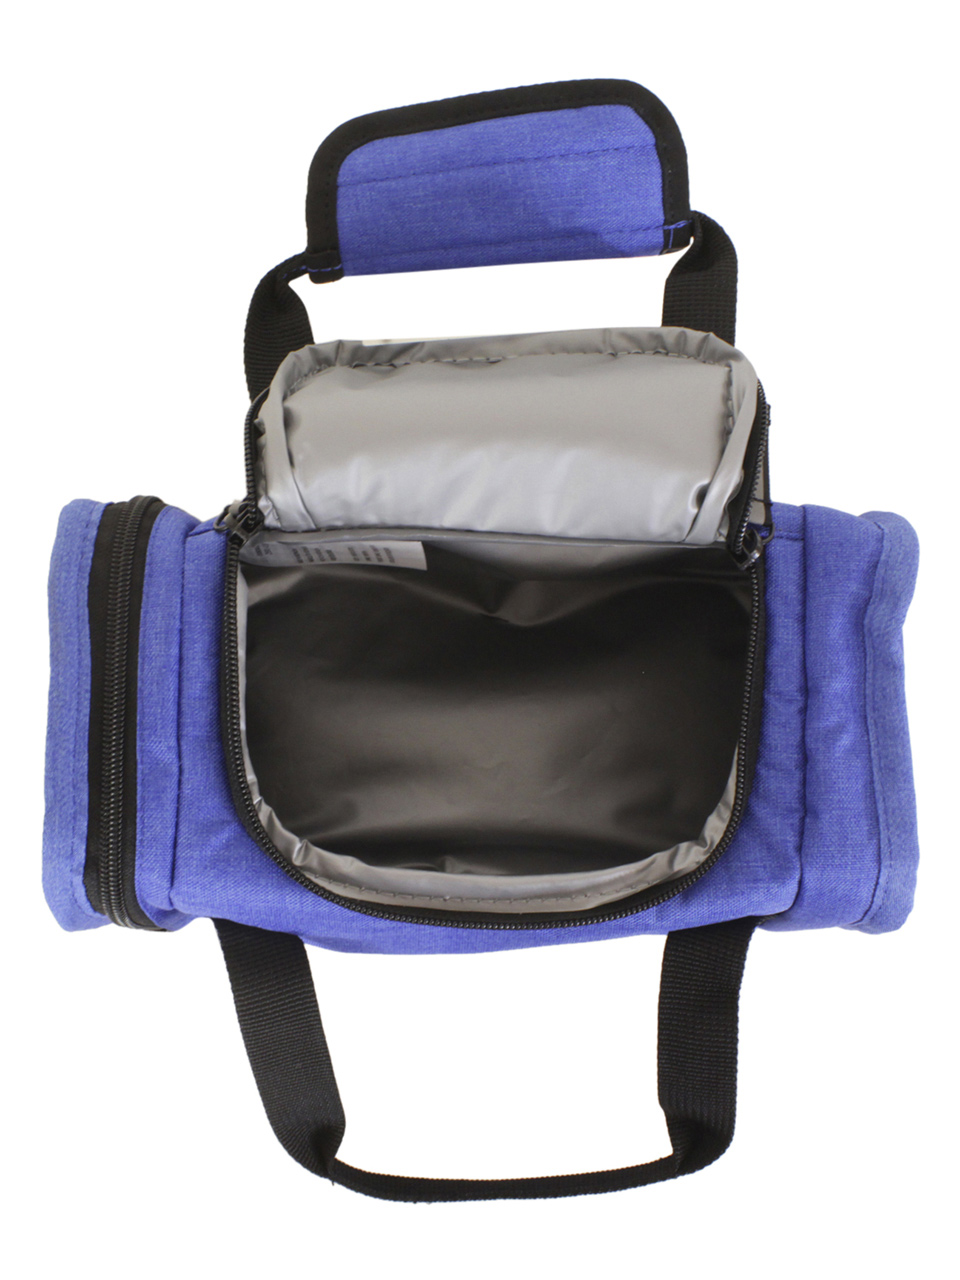 Nike-Deluxe-Insulated-Tote-Lunch-Bag thumbnail 23